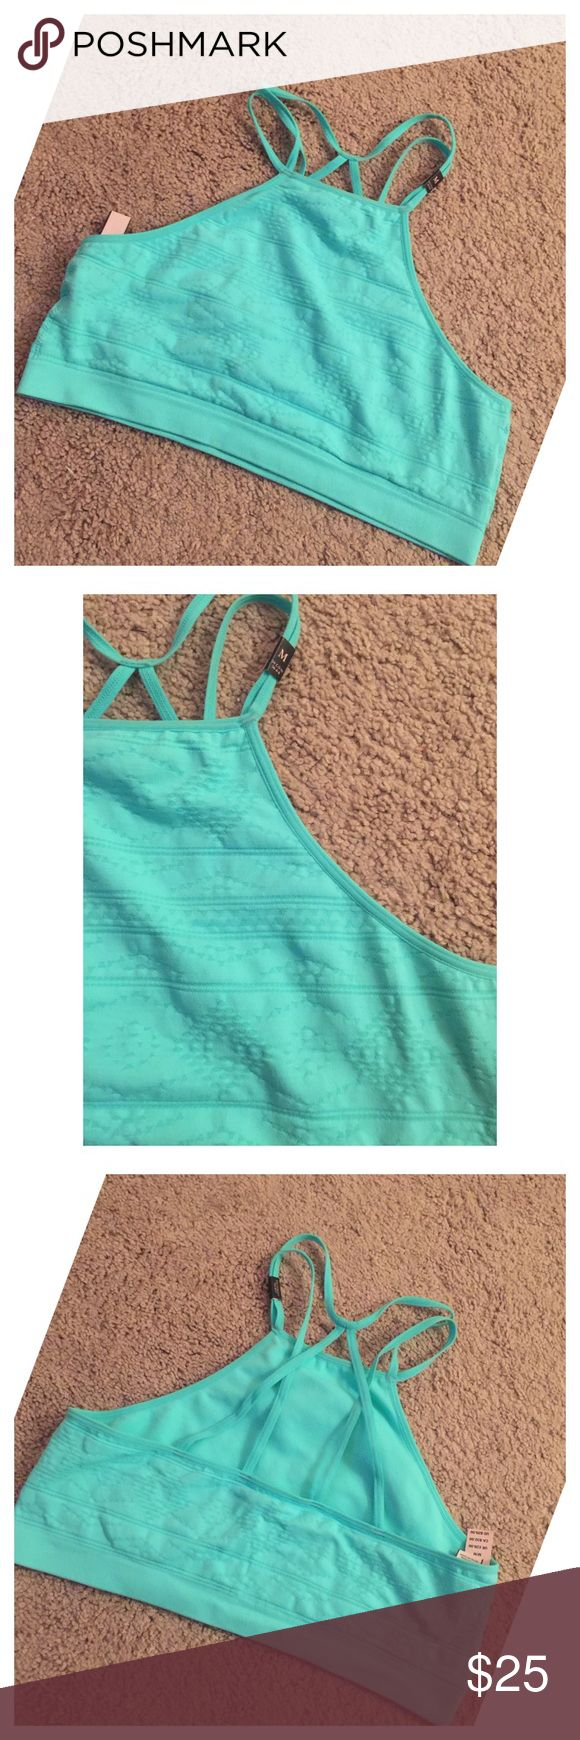 NWT Victoria's Secret teal blue sports bra New with tags (bought but is too big on me !!)  💥NO TRADES. (Unless you have this in a small or extra small! )  Retail price: $29.99  New Victoria's Secret vs pink (teal blue ) back strap strappy sports bra   Brand: Victoria's Secret   Color: teal blue  Size: medium   Any questions feel free To ask! NEXT OR SAME day ship. PINK Victoria's Secret Intimates & Sleepwear Bras